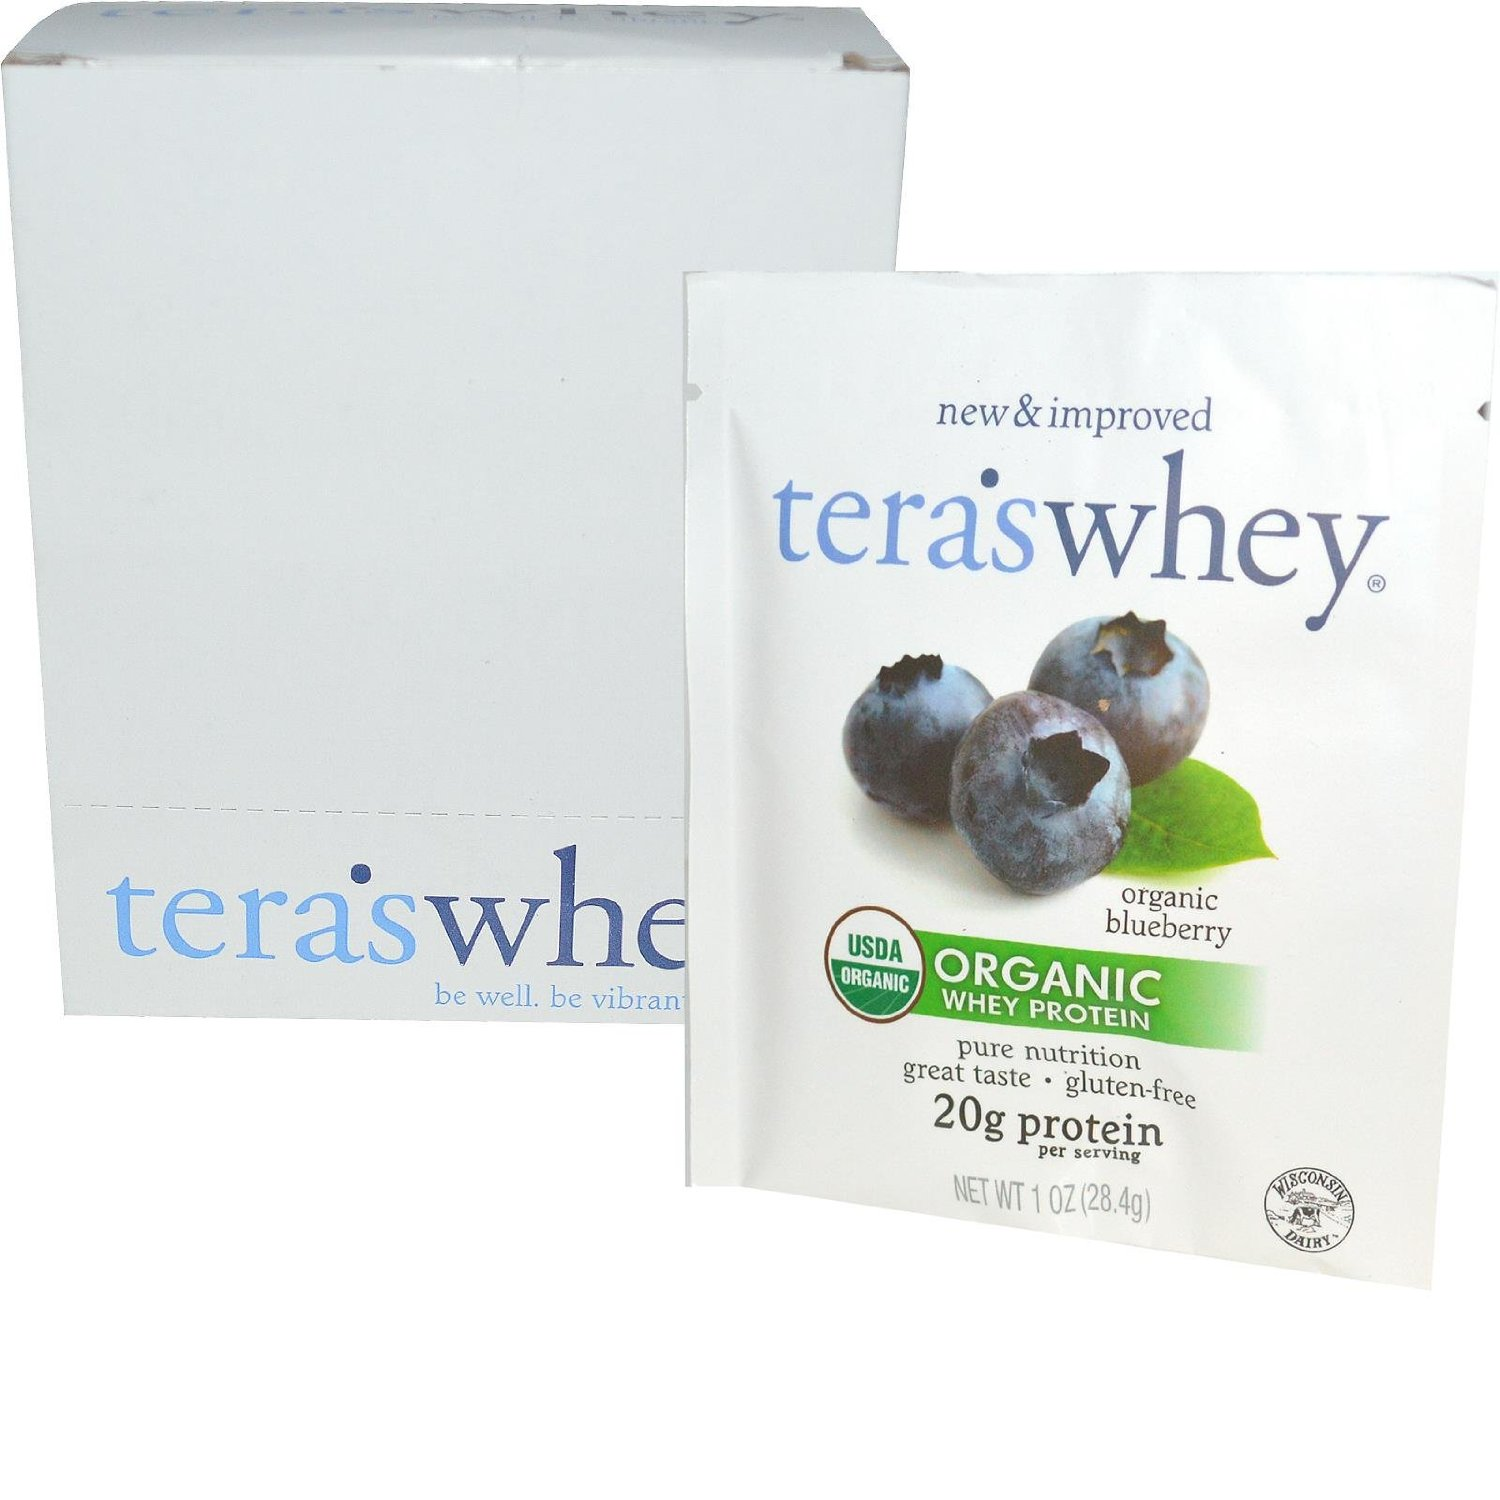 Image of Organic Cow Whey Wild Blueberry 1oz Counter Display